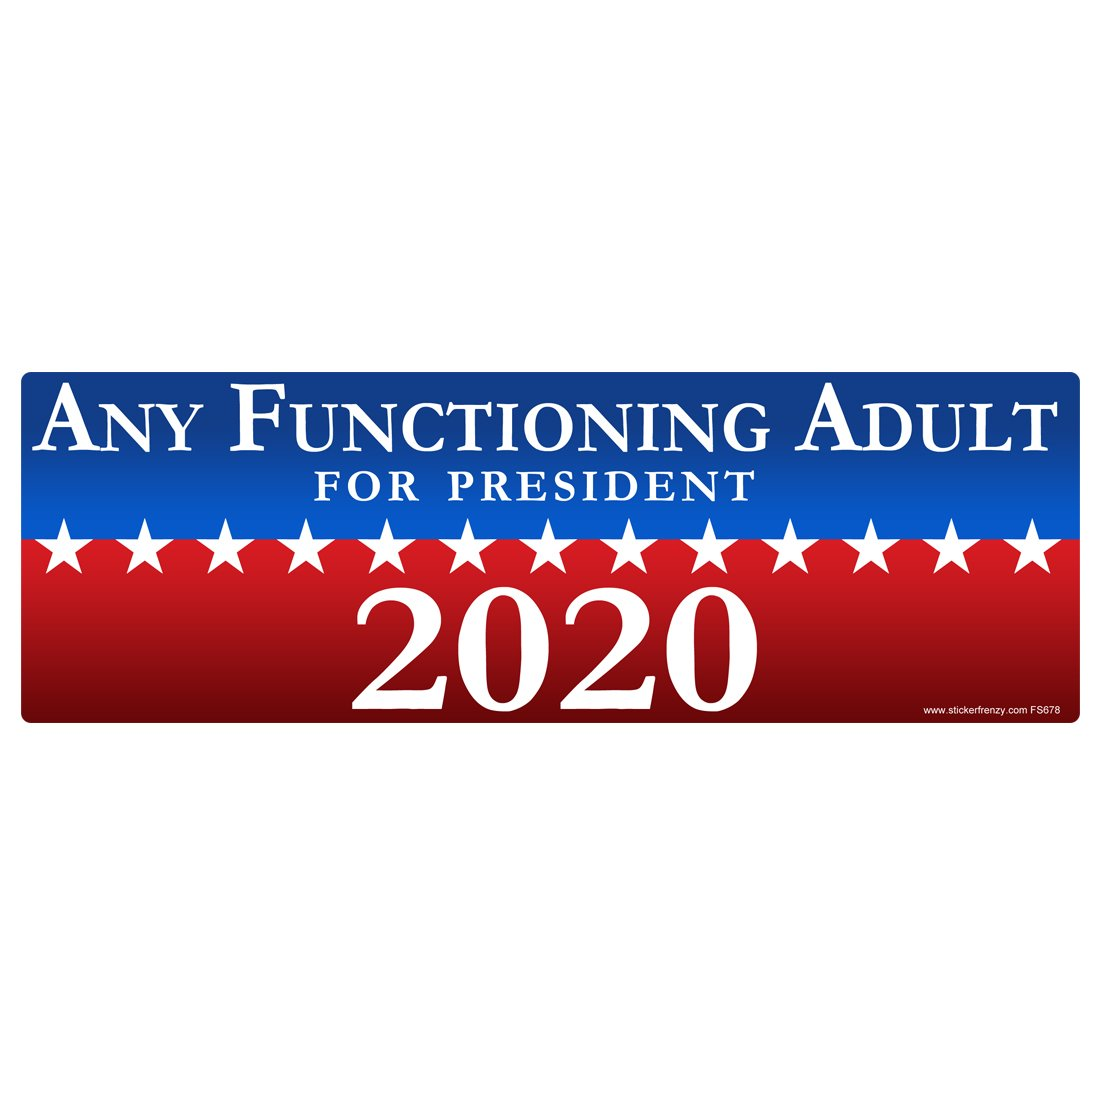 1 any functioning adult for president 2020 sticker fs678 laminated political funny bumper car truck window election vinyl decal usa